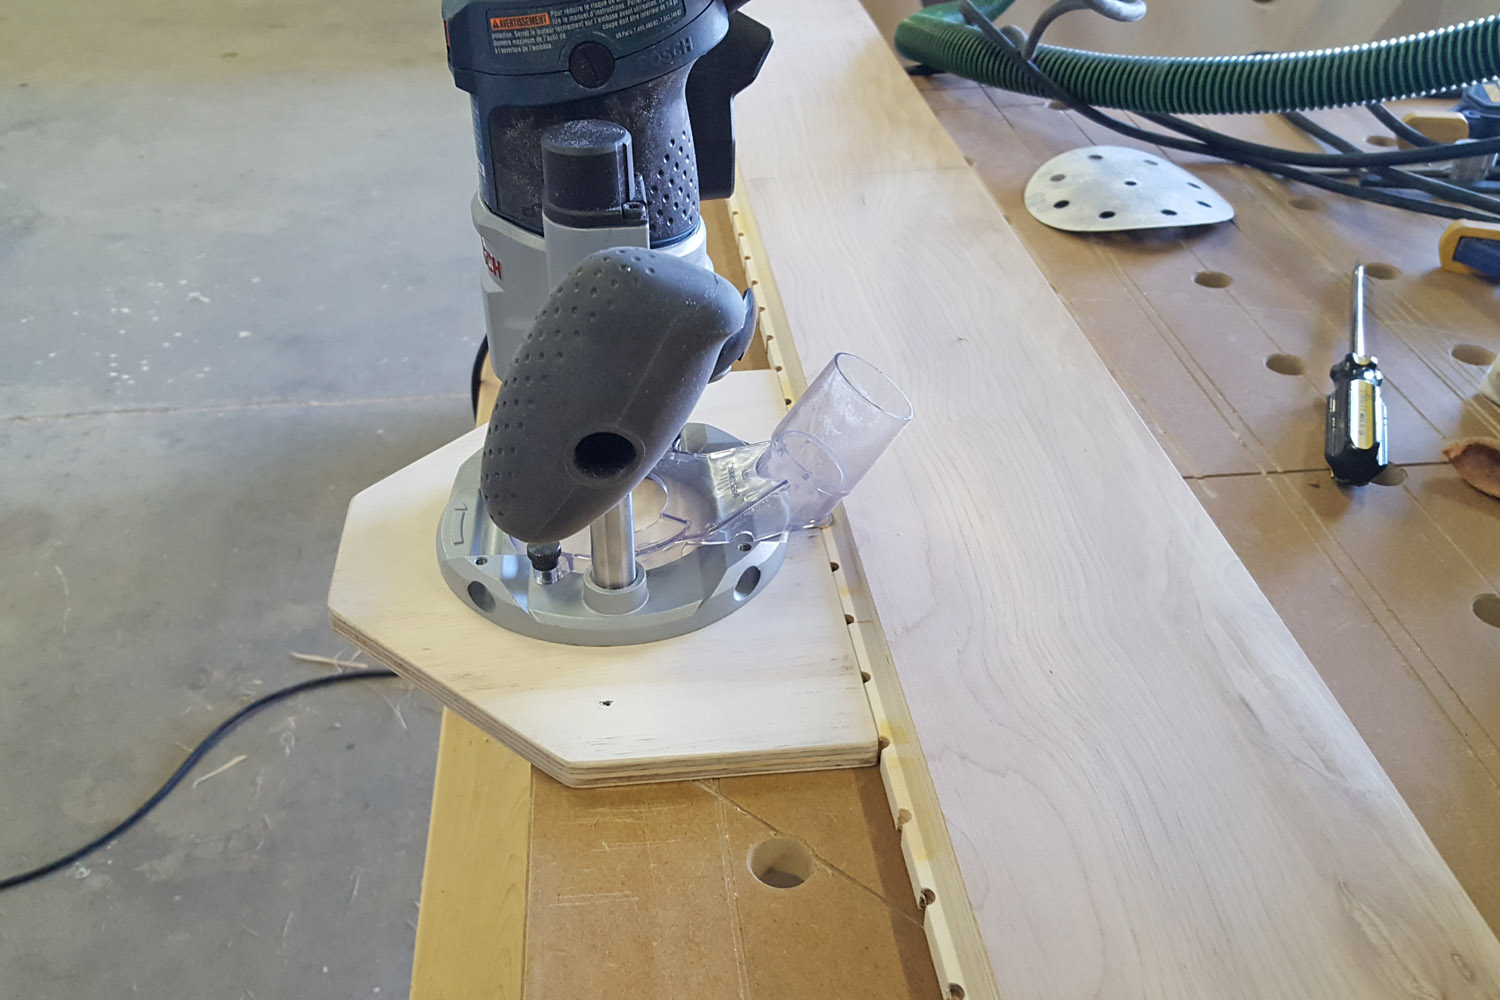 Router shelf pin hole jig